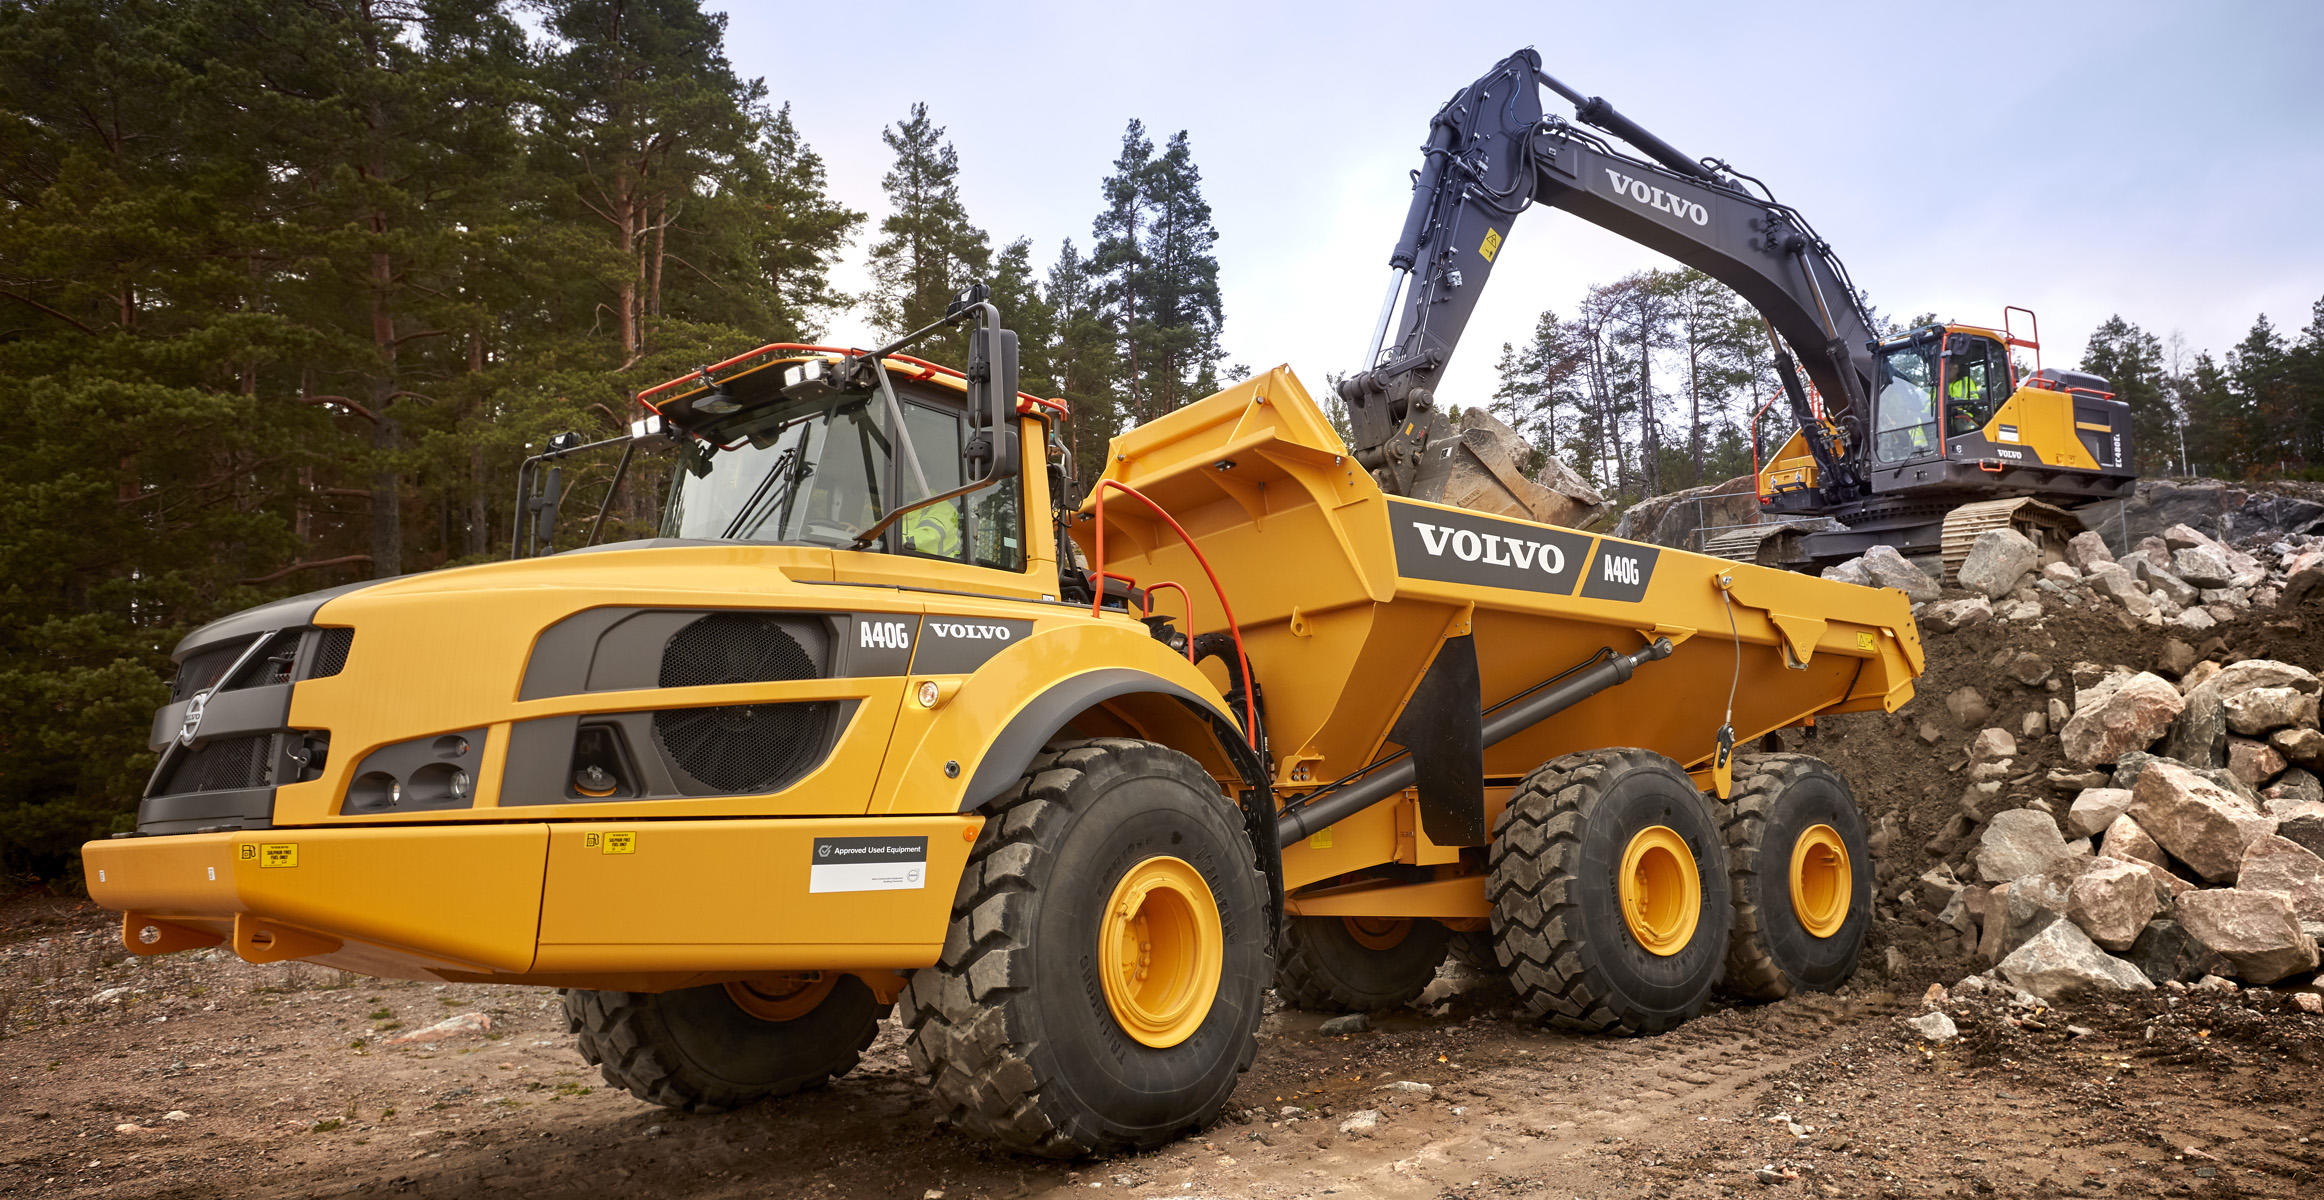 Volvo used equipment